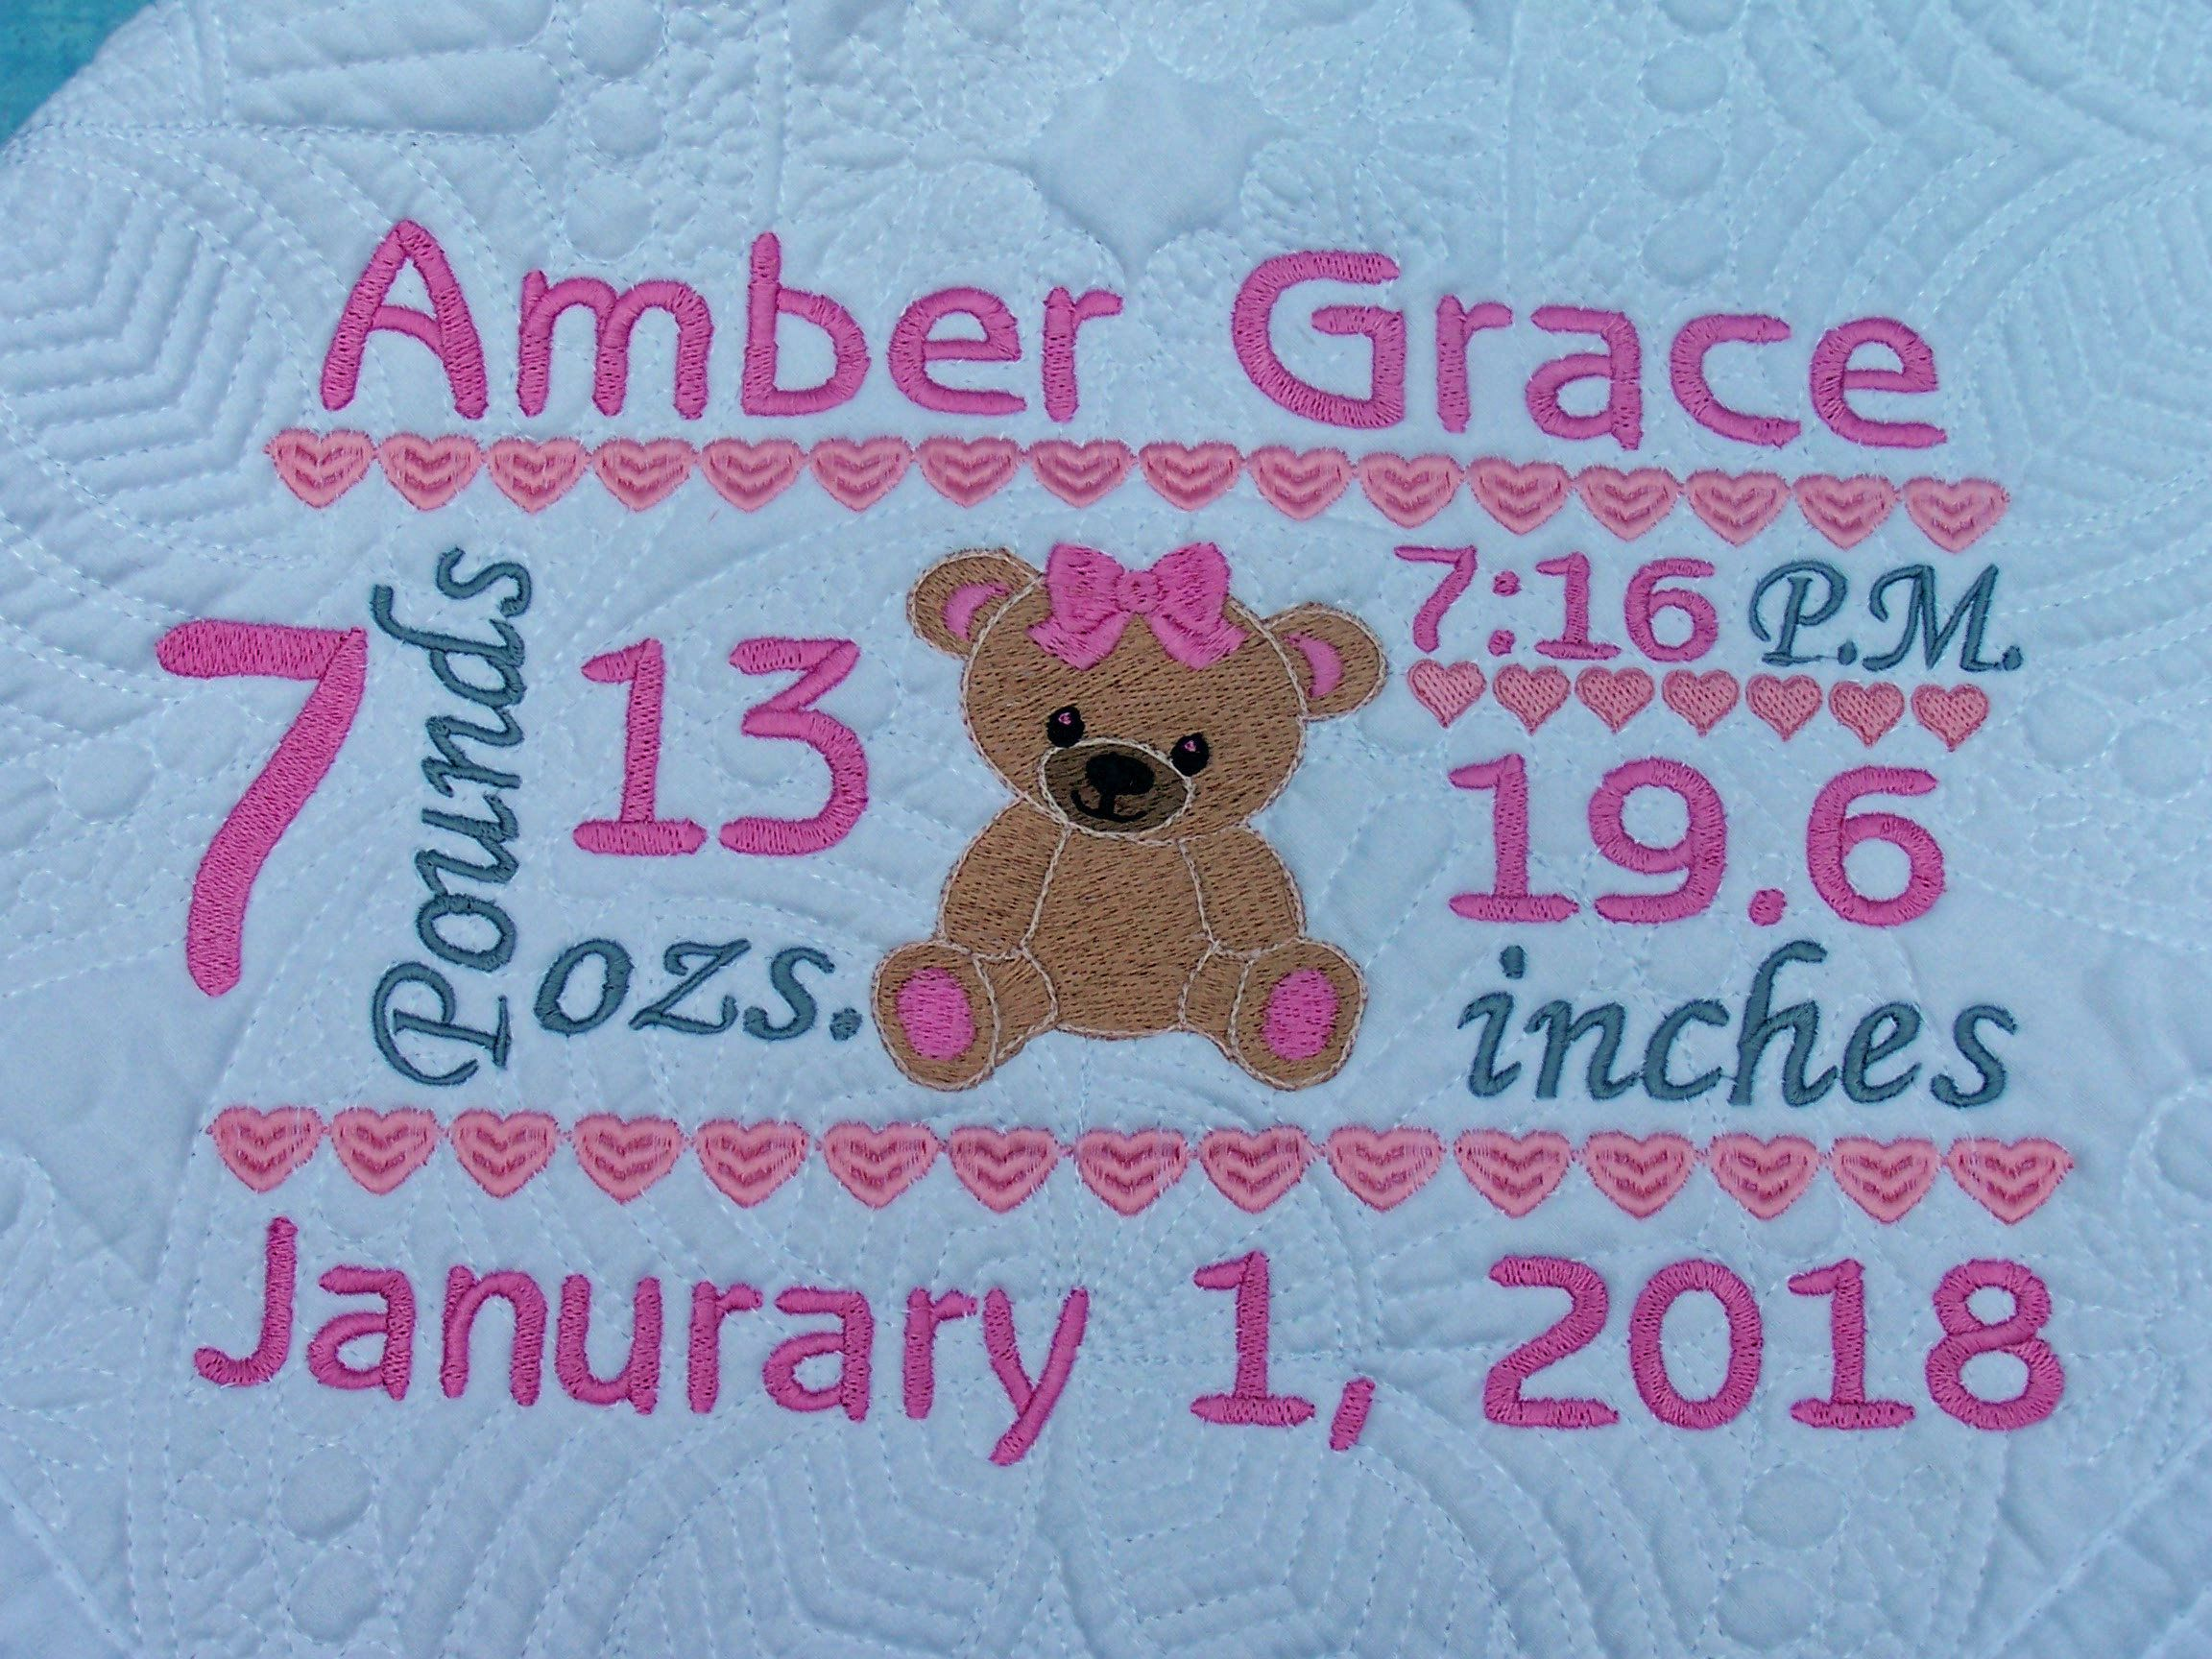 Personalized baby quilt quilt baby quilt personalized quilt personalized baby quilt quilt baby quilt personalized quilt birth announcement quilt baby blanket quilted crib blanket baby gift negle Image collections